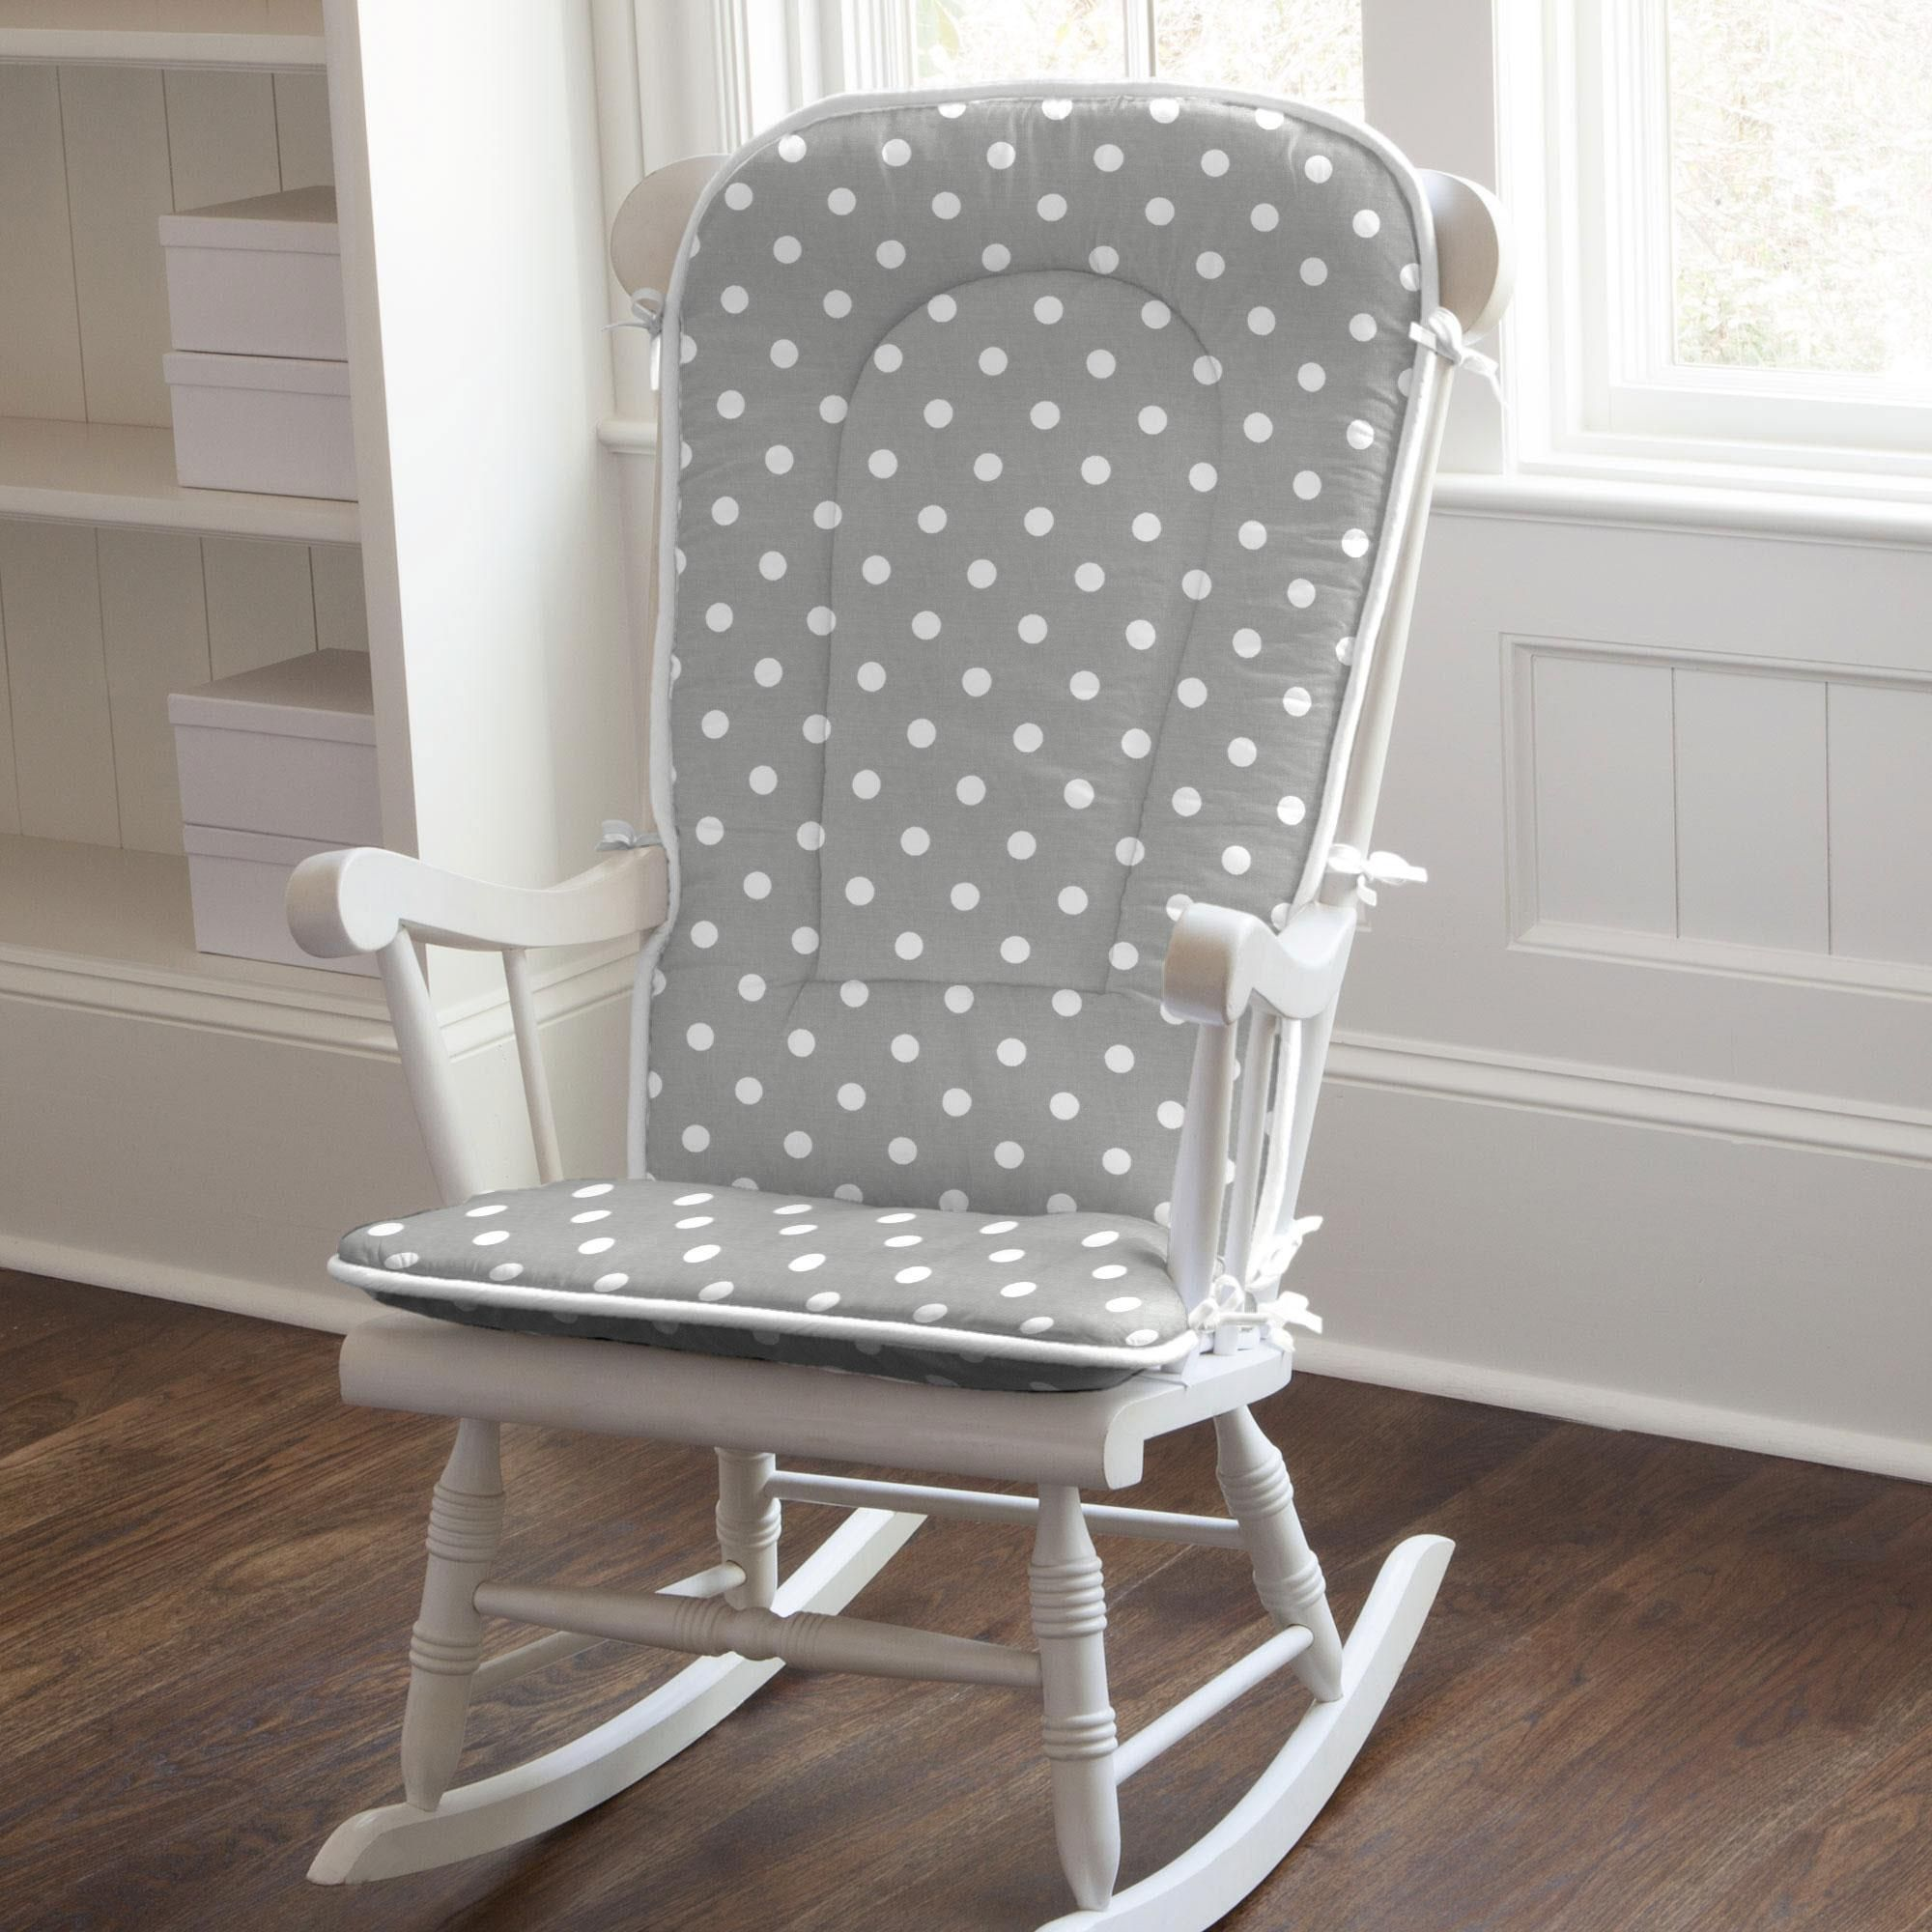 Gray and White Dots and Stripes Rocking Chair Pad White